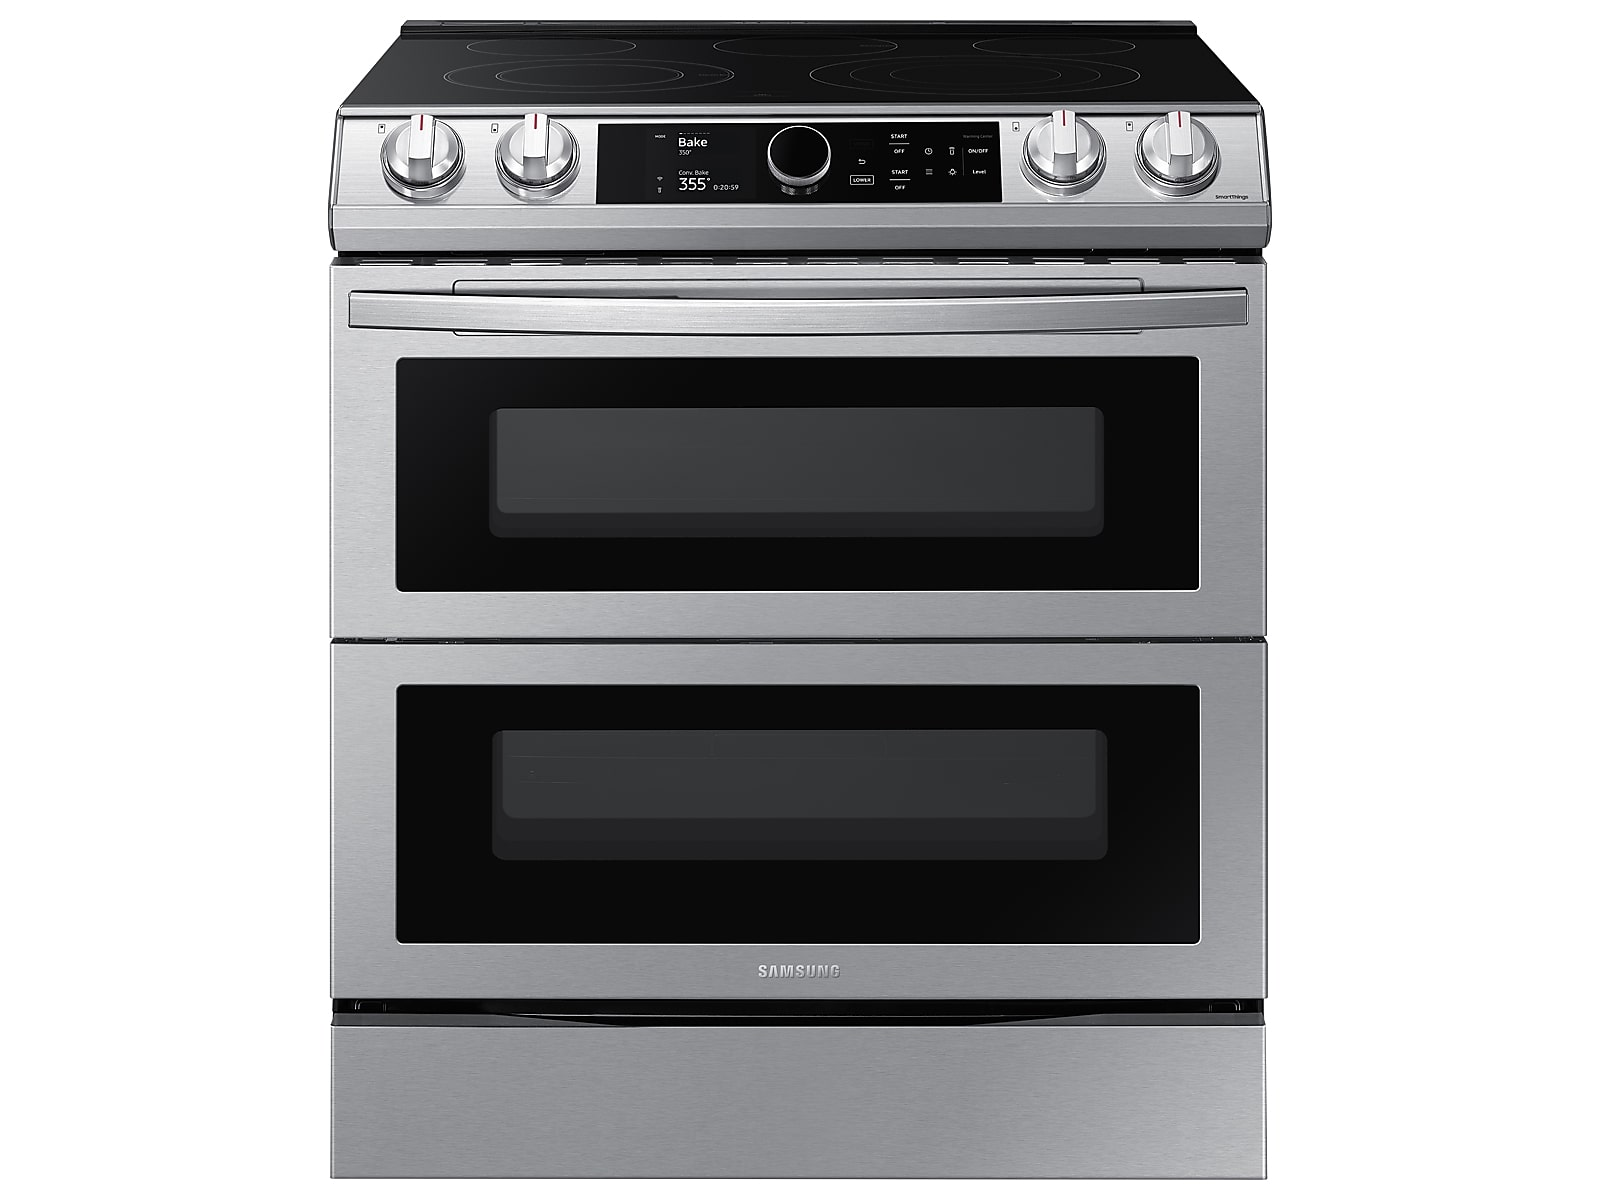 Samsung 6.3 cu ft. Smart Slide-in Electric Range with Smart Dial, Air Fry, & Flex Duo™ in Silver(NE63T8751SS/AA)